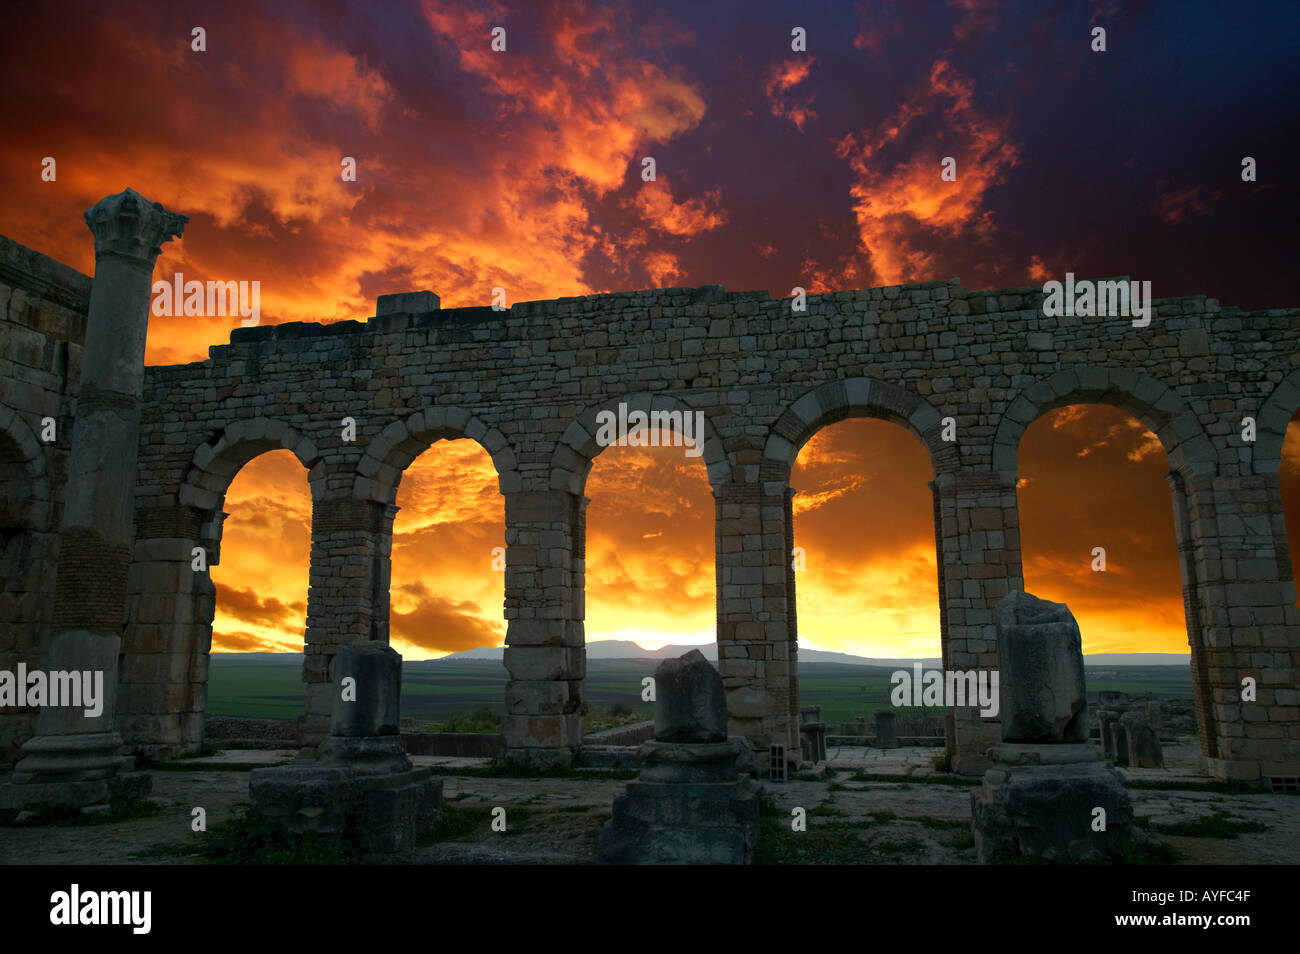 Volubilis Roman ruins Dates from the 2nd and 3rd centuries AD Sunset silhouettes the curved archways of the Basilica Morocco - Stock Image